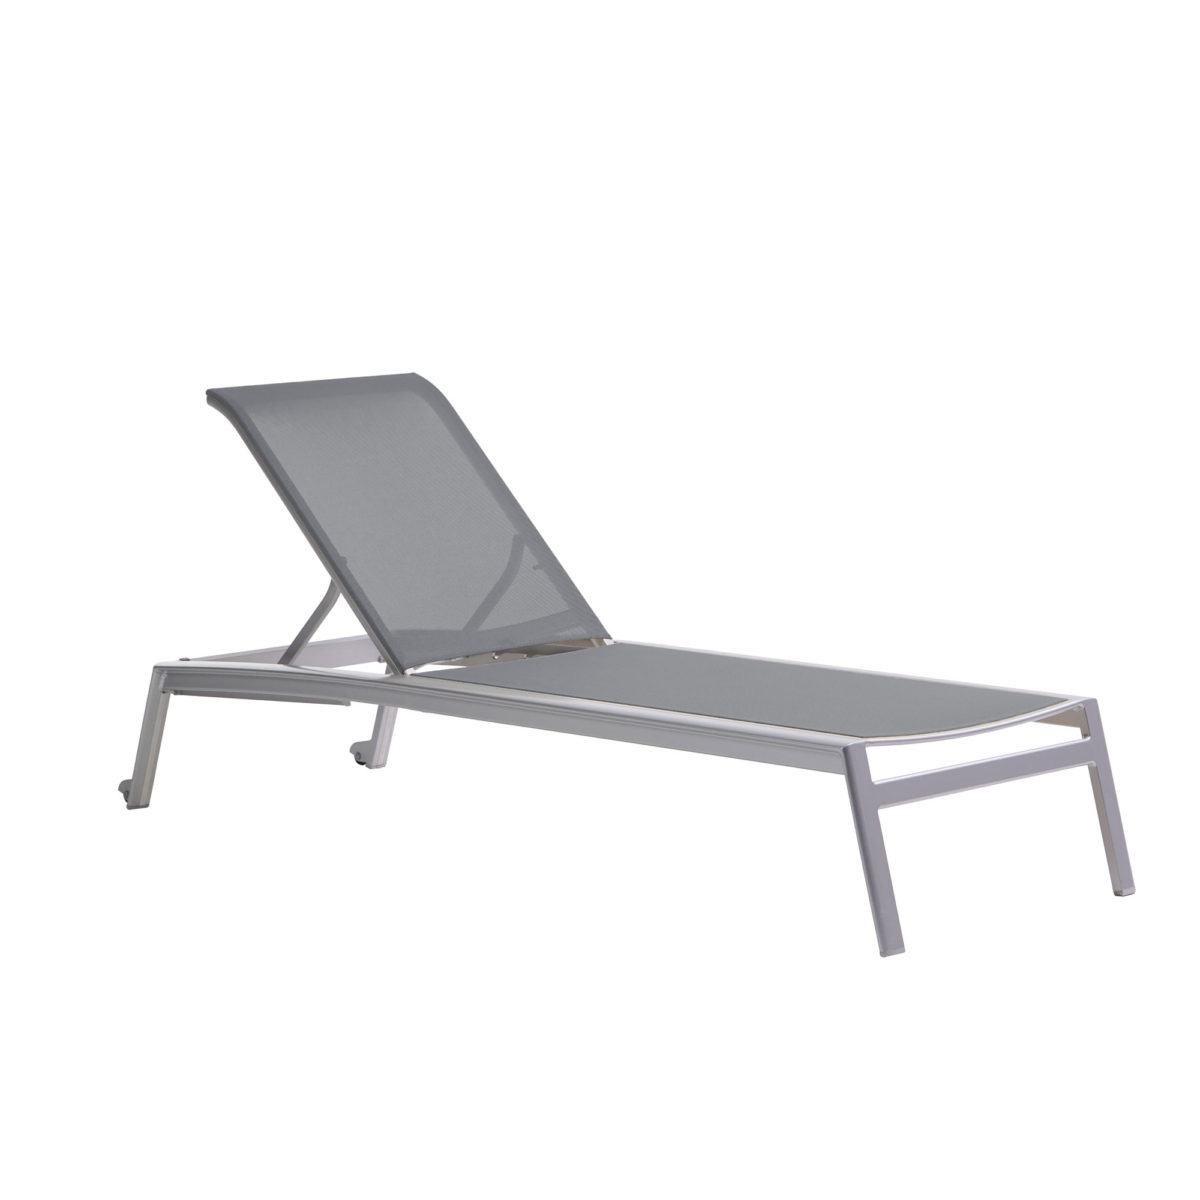 The Lyon adjustable lounge chair in grey.